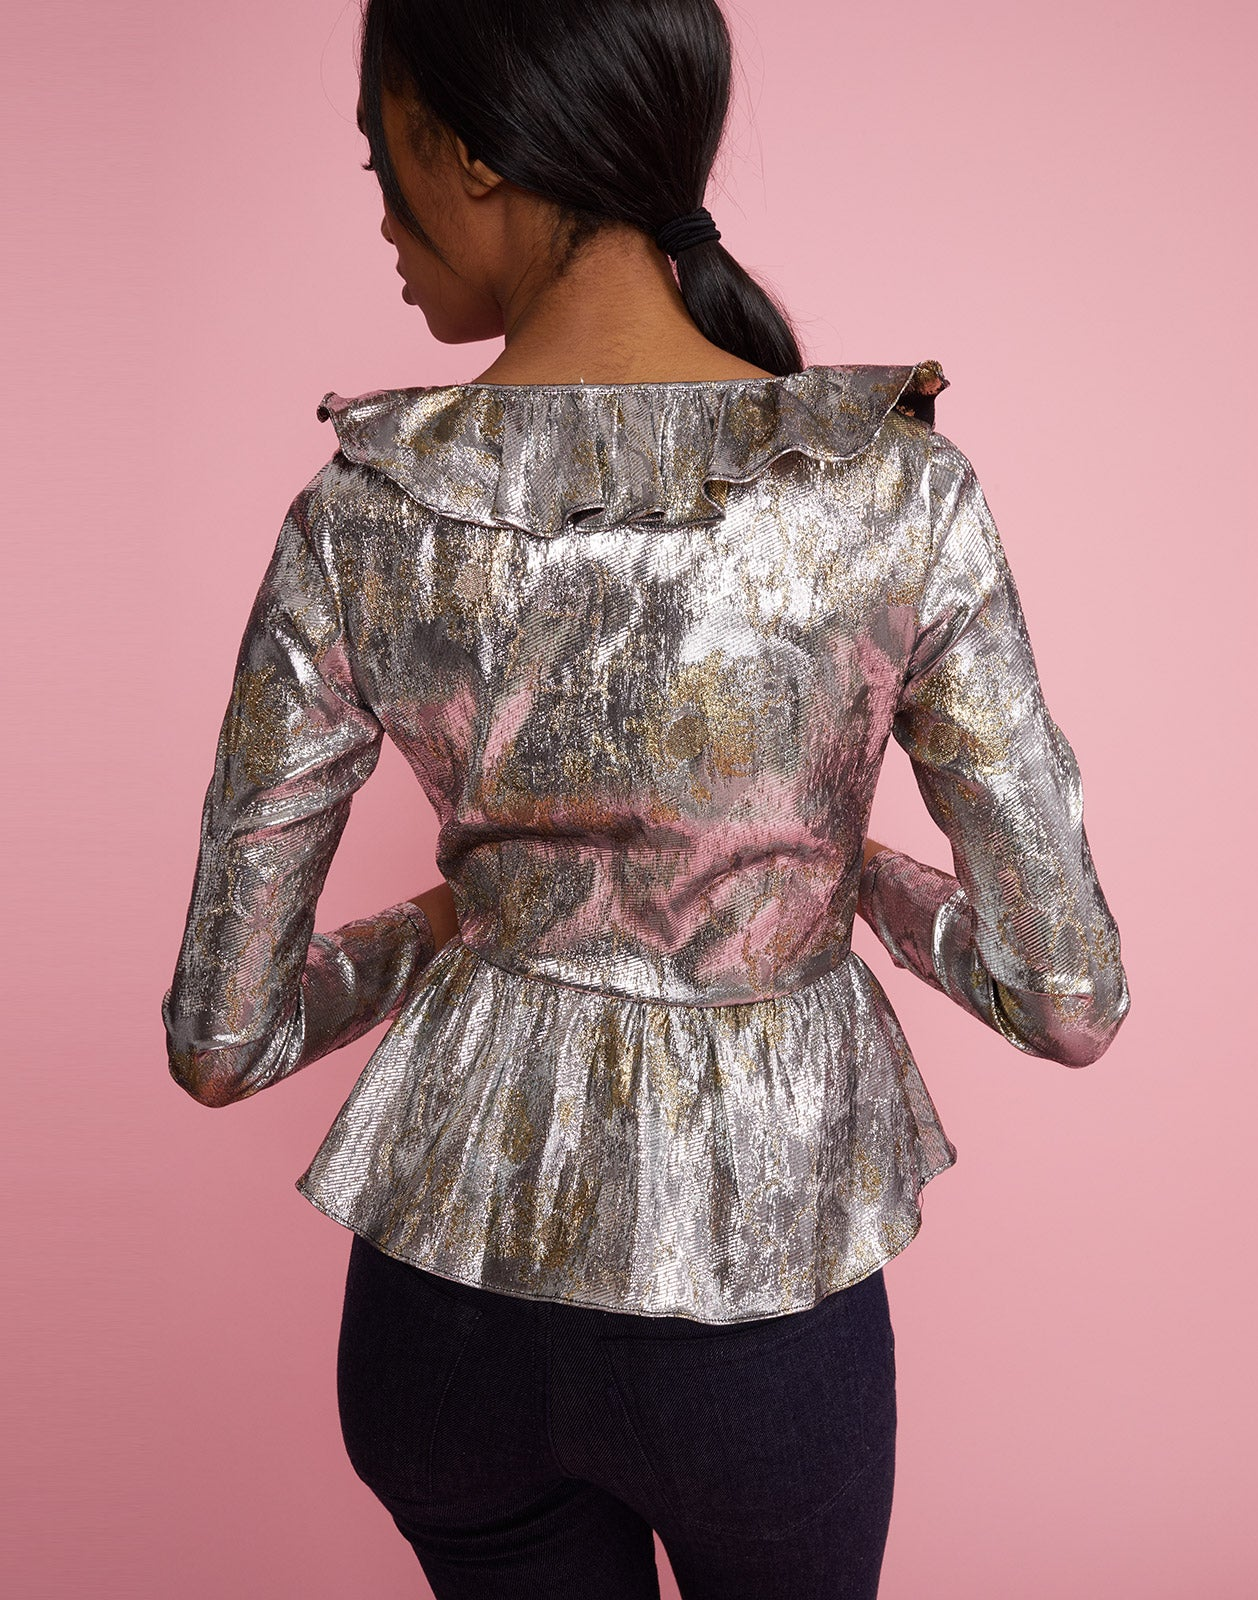 Back view of model wearing Gold Coast Metallic Brocade Ruffle Top.